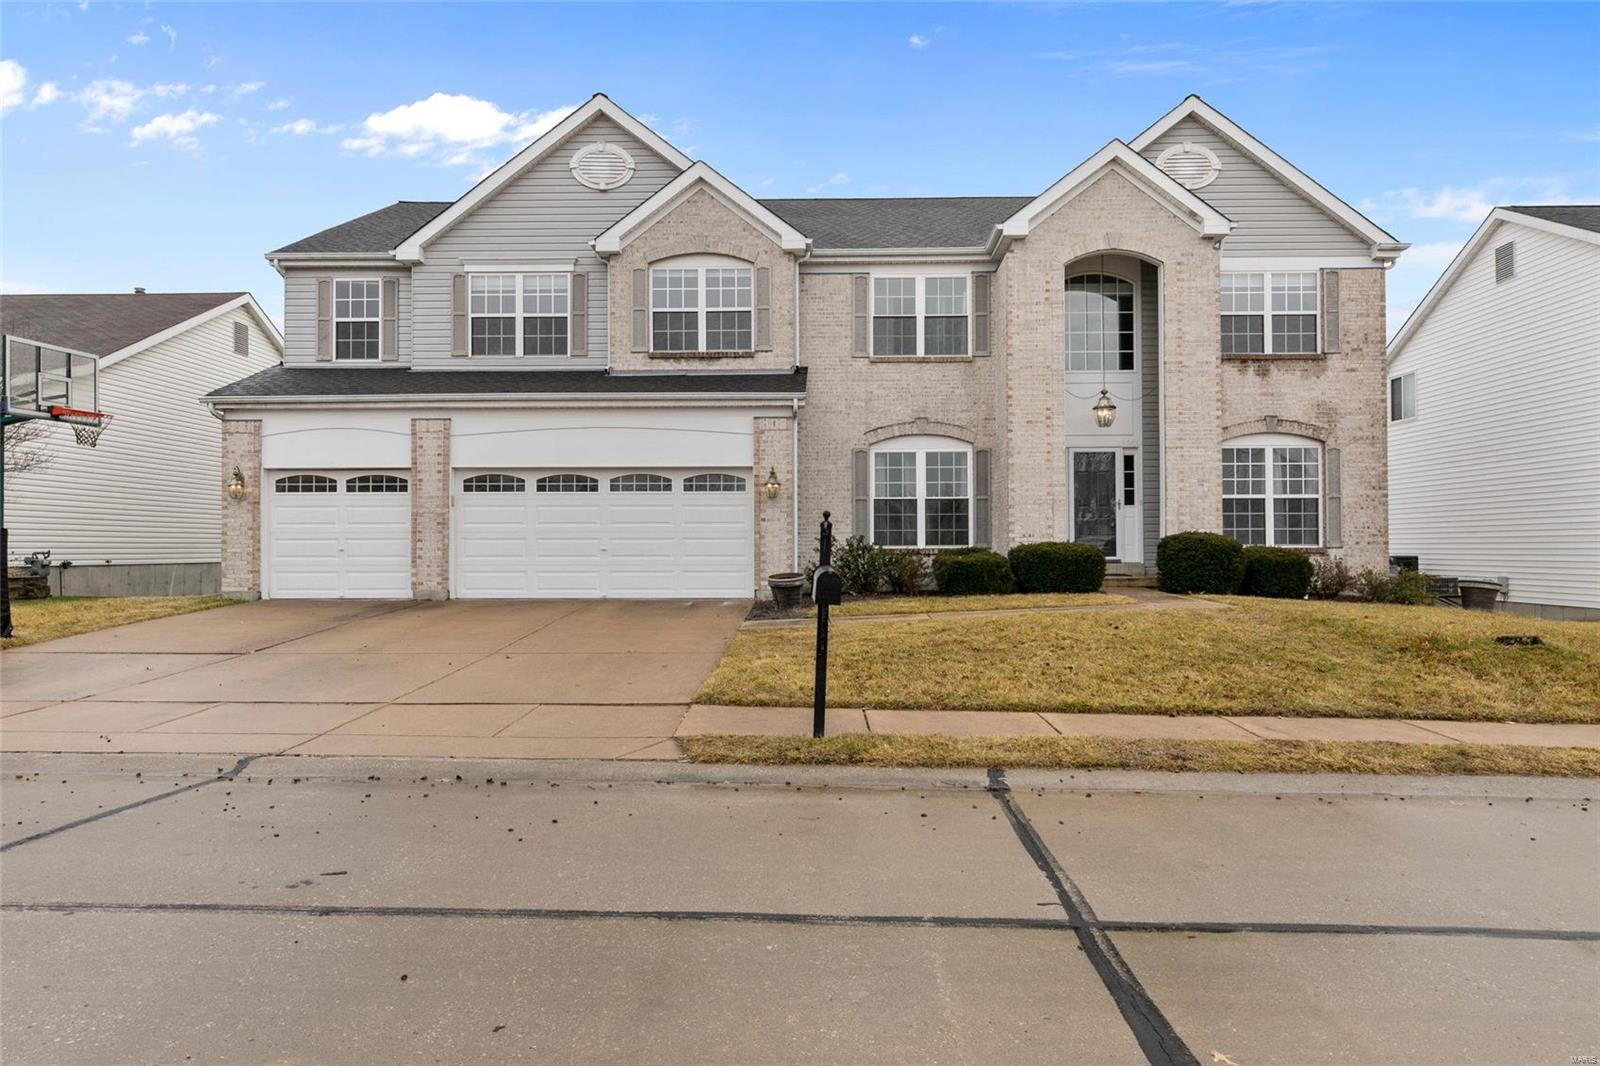 3560 Compton Pkwy Property Photo - St Charles, MO real estate listing